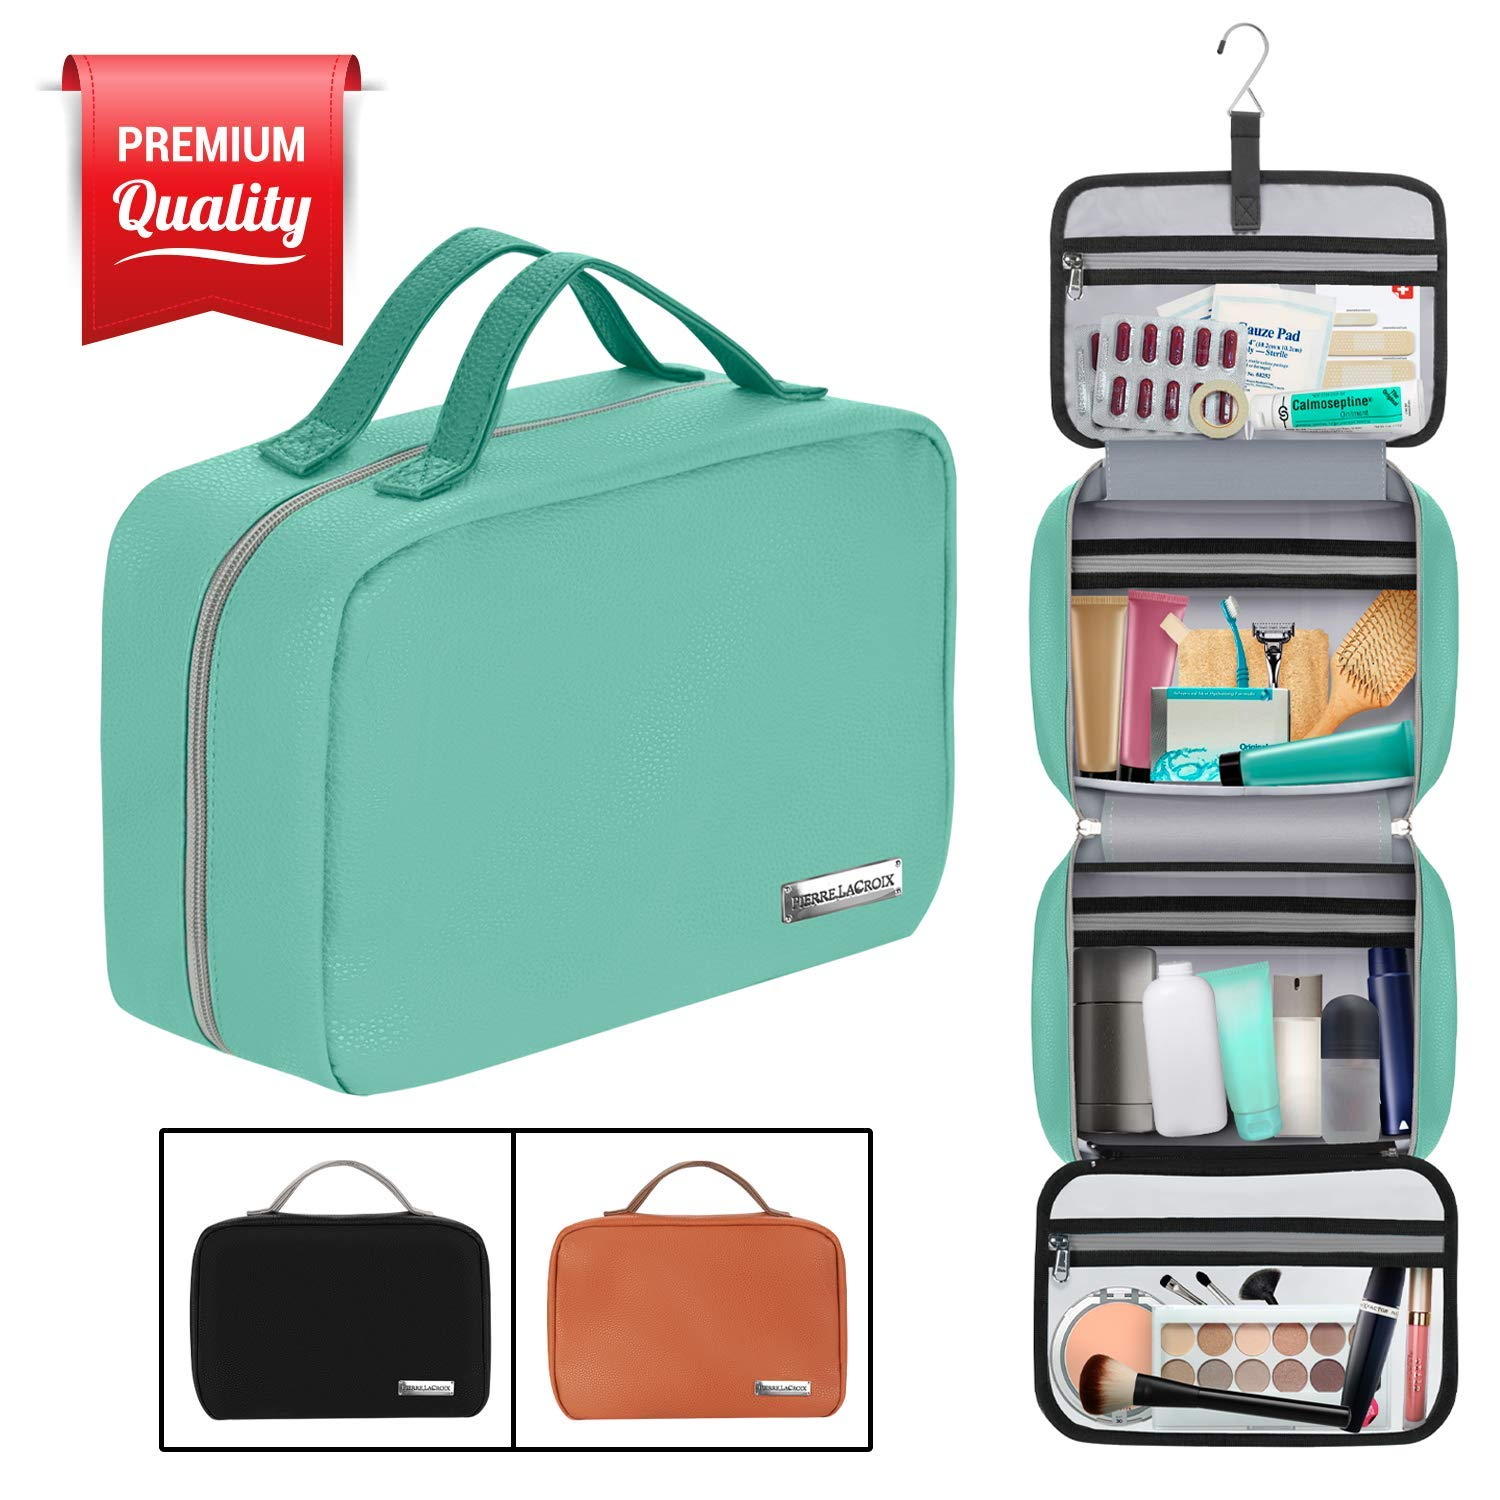 Hanging Travel Toiletry Bag for Women and Men (100% Leak Proof & Doubles as a Cosmetic/Makeup Bag) | Large (34''x11'') | Clear Pockets | Detachable Compartment | Cruelty-Free Leather | (Tiffany Blue) by Pierre LaCroix